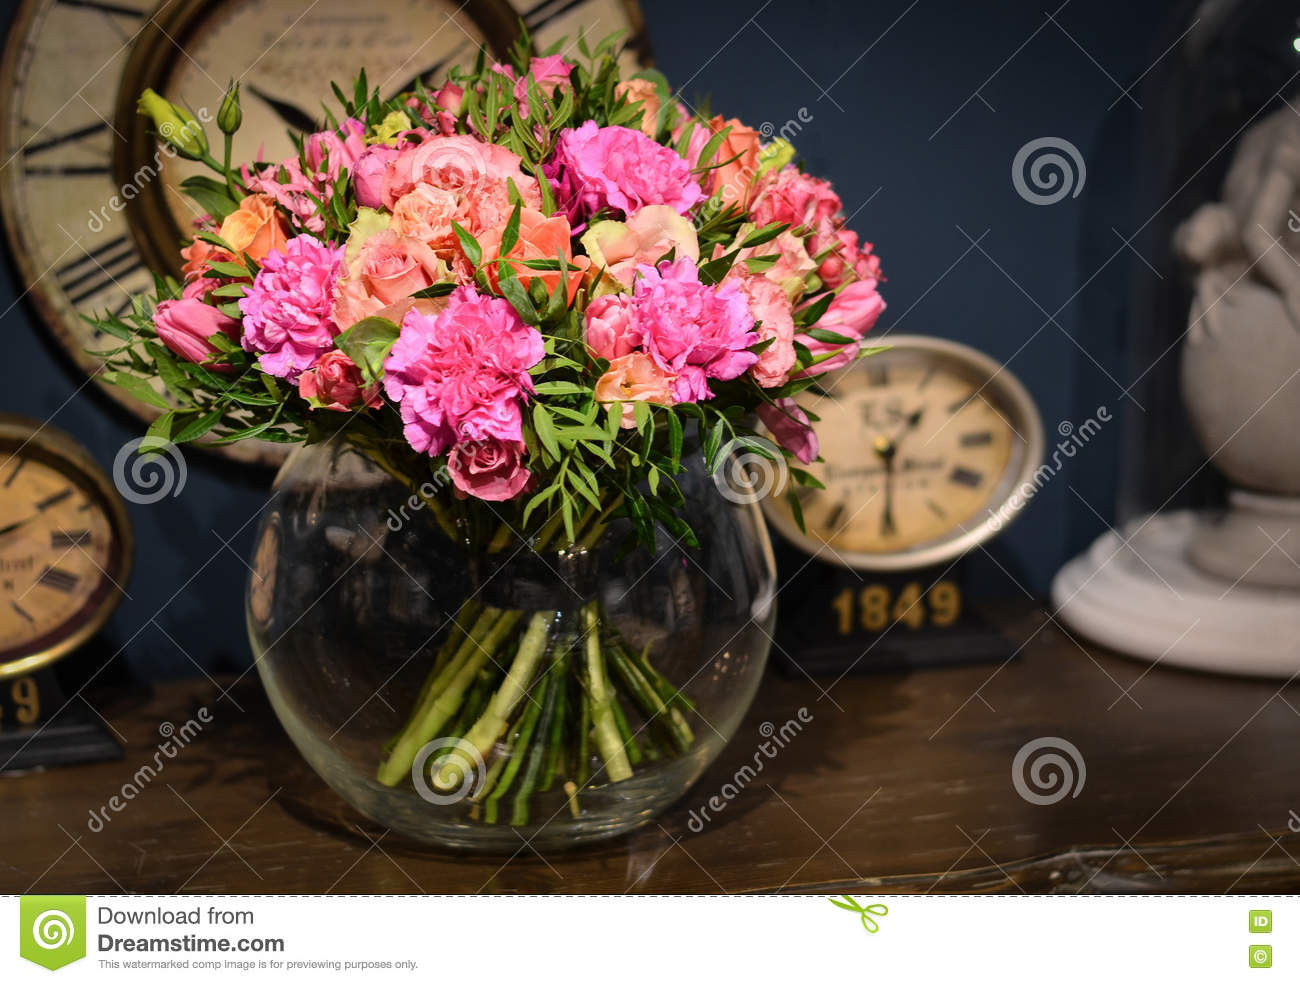 Bouquet Of Pink Roses On A Blue Background Wall With Vintage Clock on